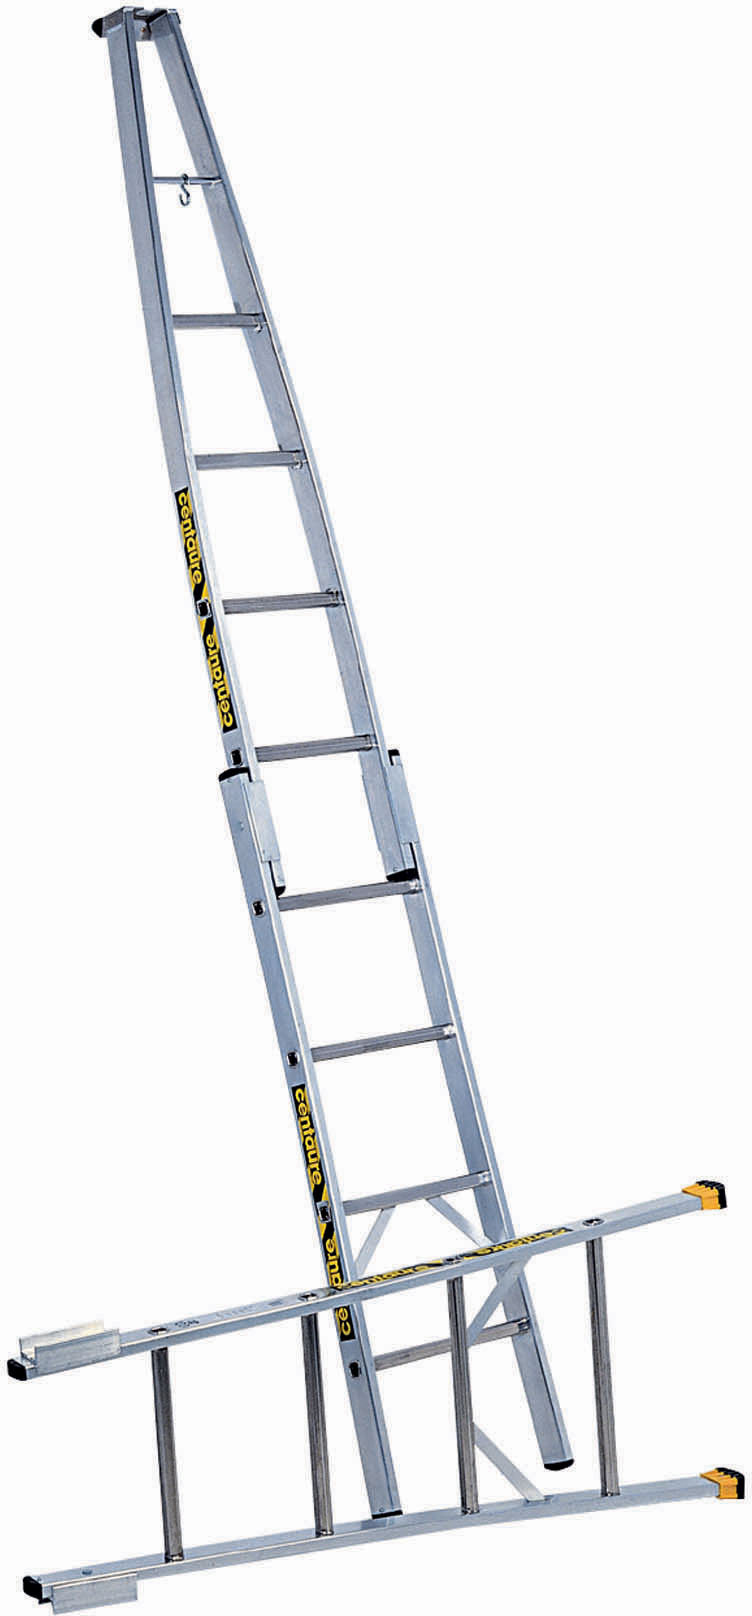 Glazenwasser ladder